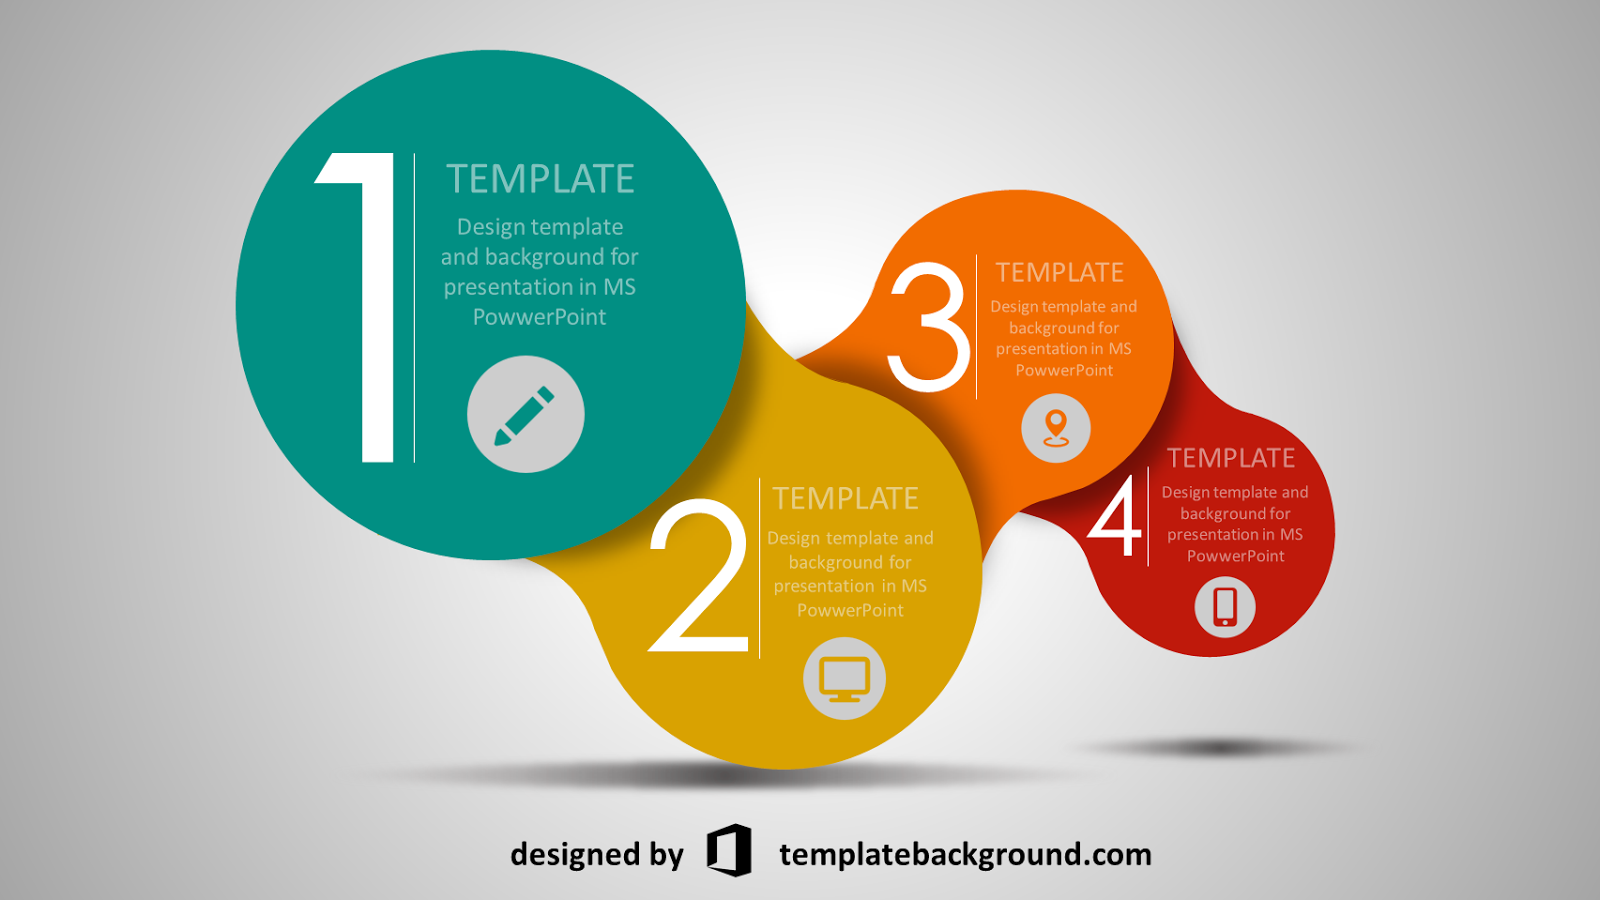 Free downloadable powerpoint presentation templates juve free downloadable powerpoint presentation templates toneelgroepblik Images